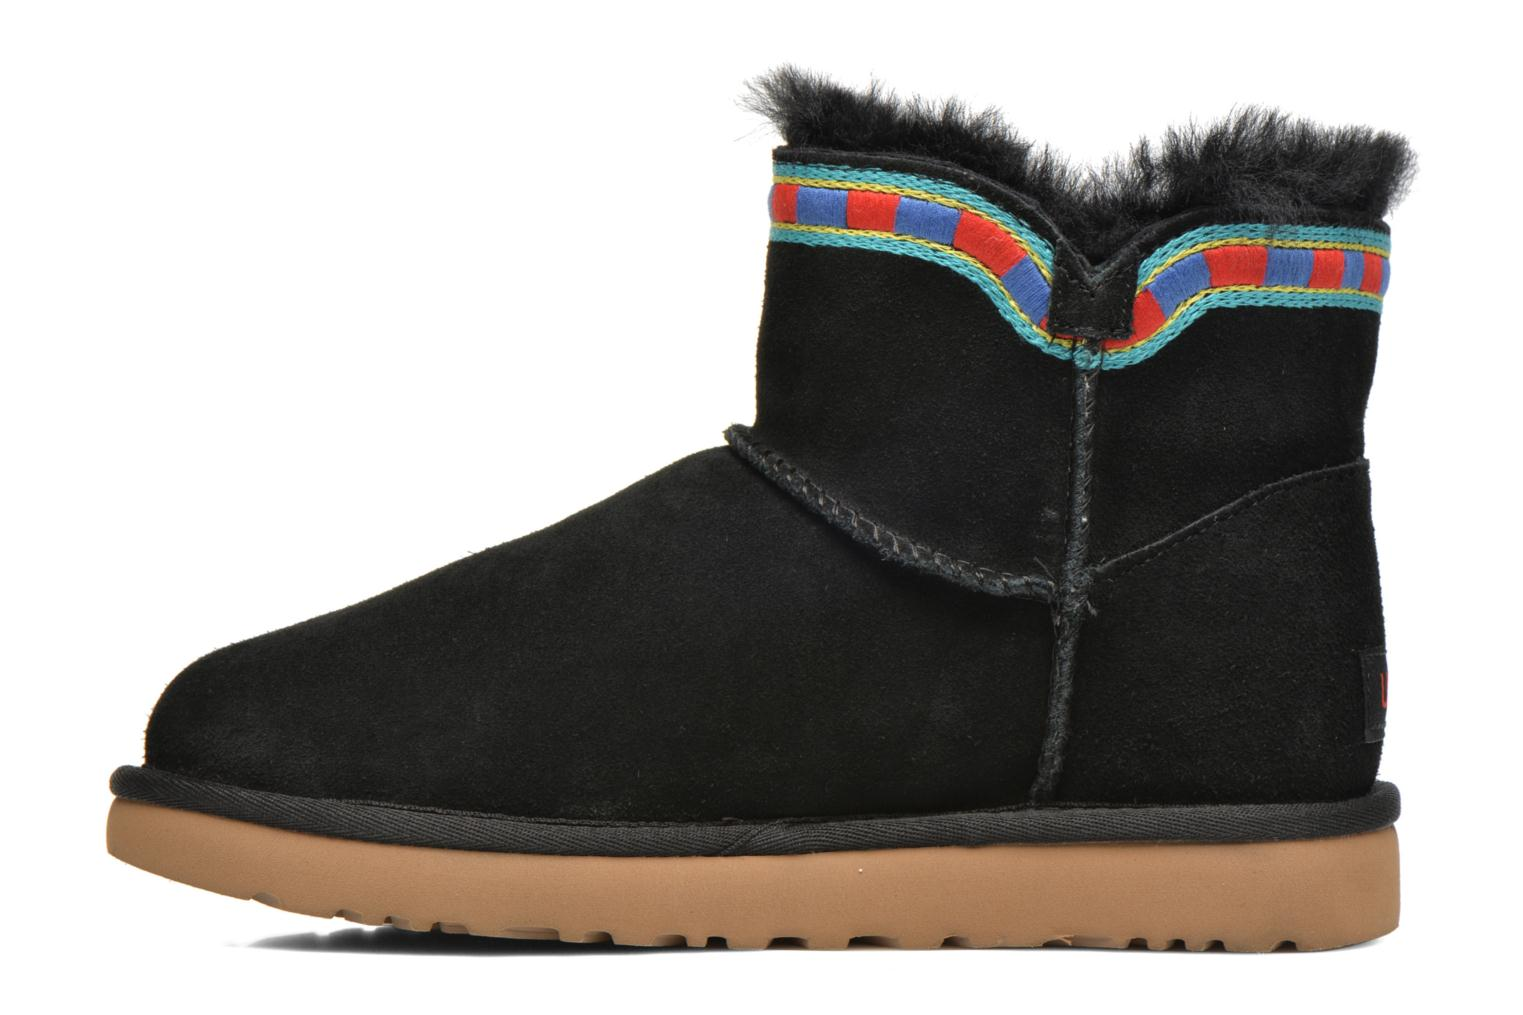 Bottines et boots UGG ROSAMARIA EMBROIDERY Noir vue face